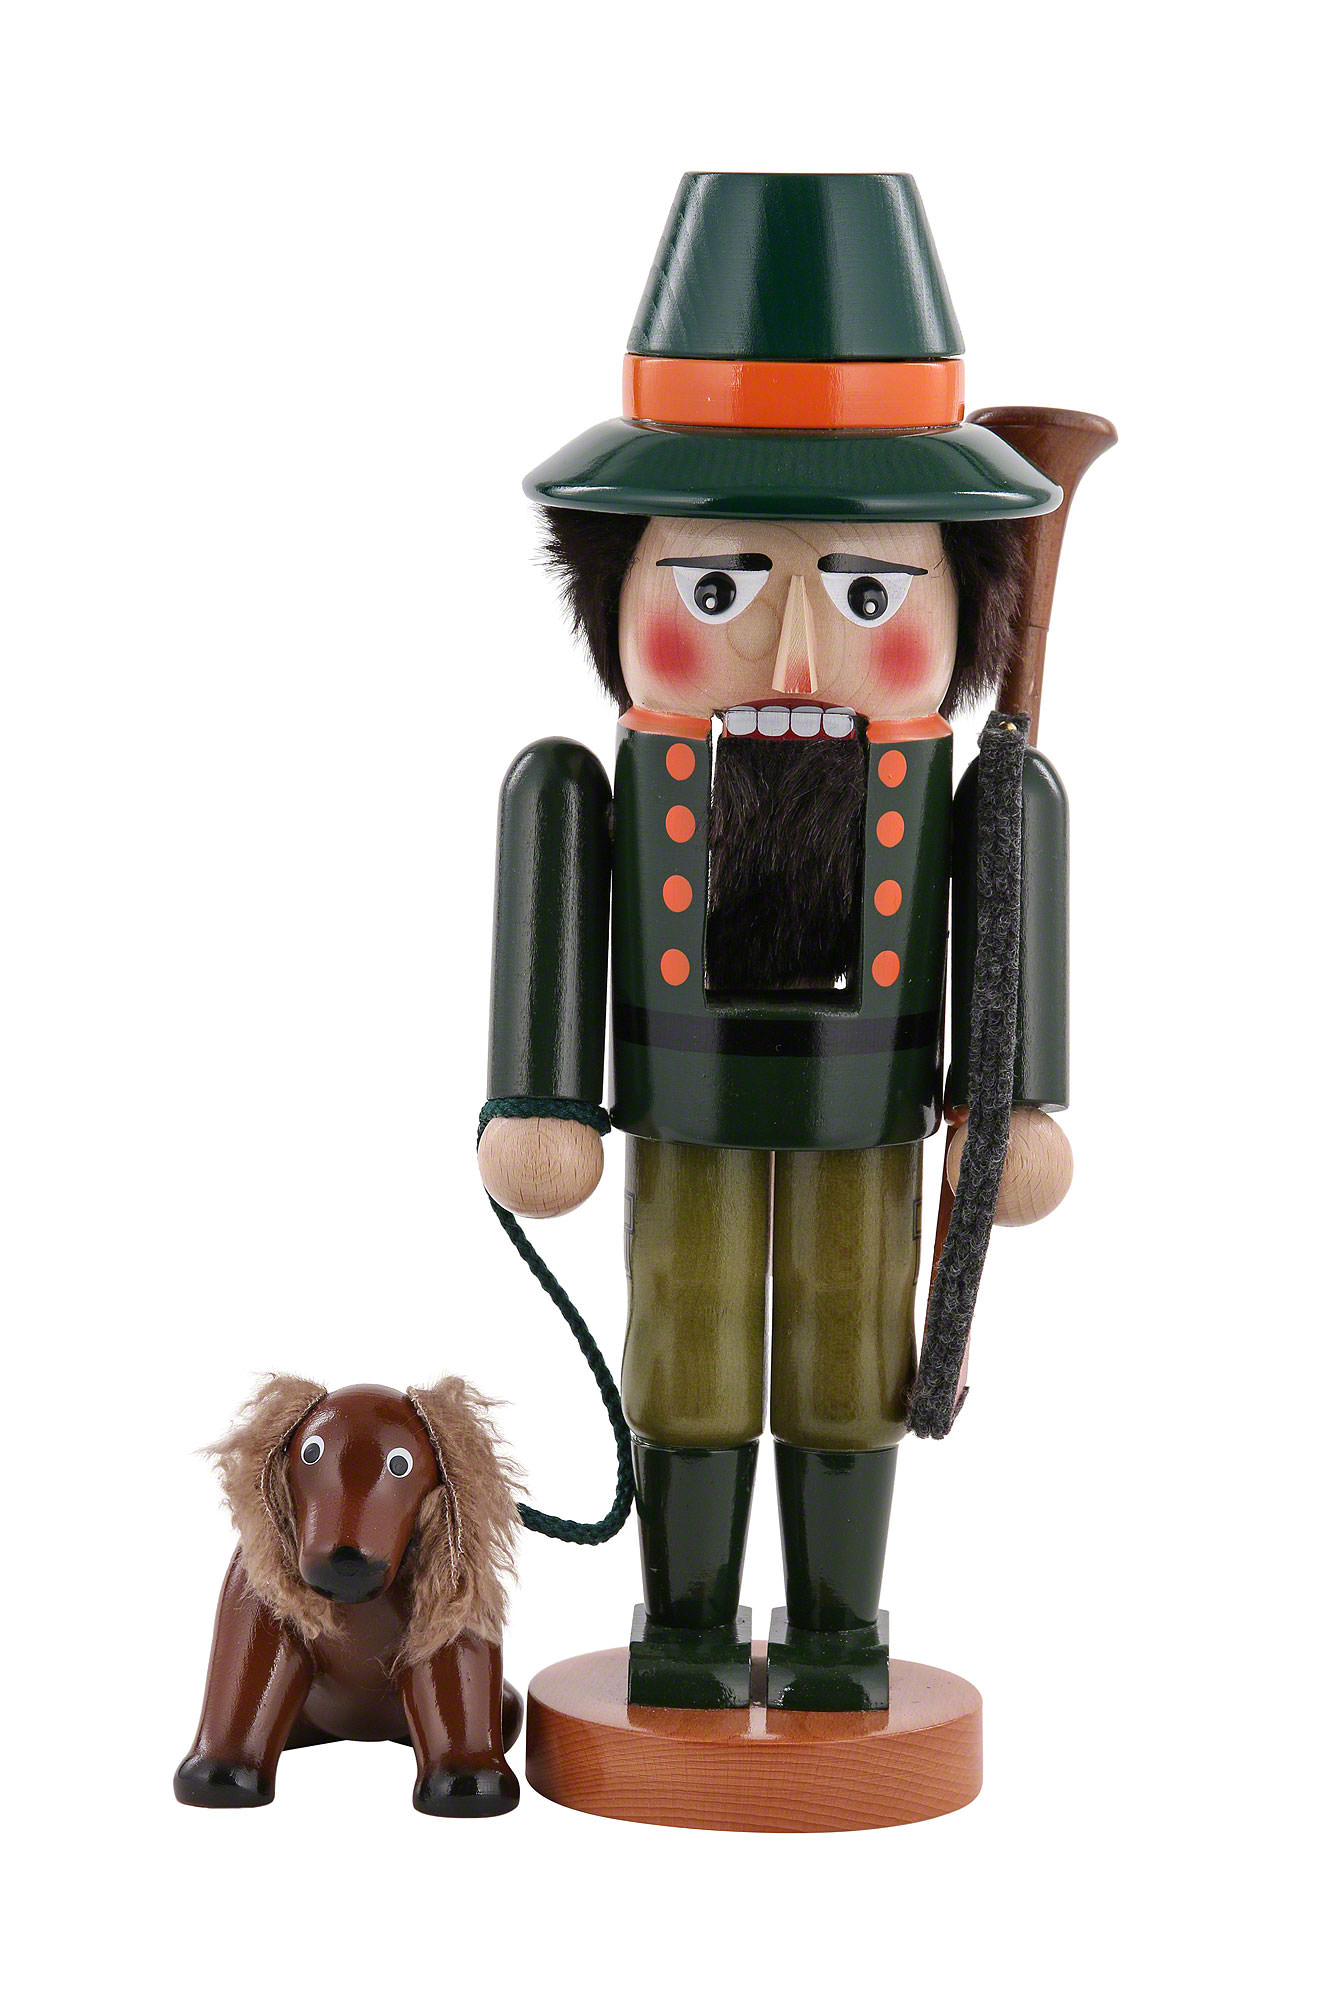 nutcracker hunter with dog 35 cm 14in by steinbach volkskunst. Black Bedroom Furniture Sets. Home Design Ideas